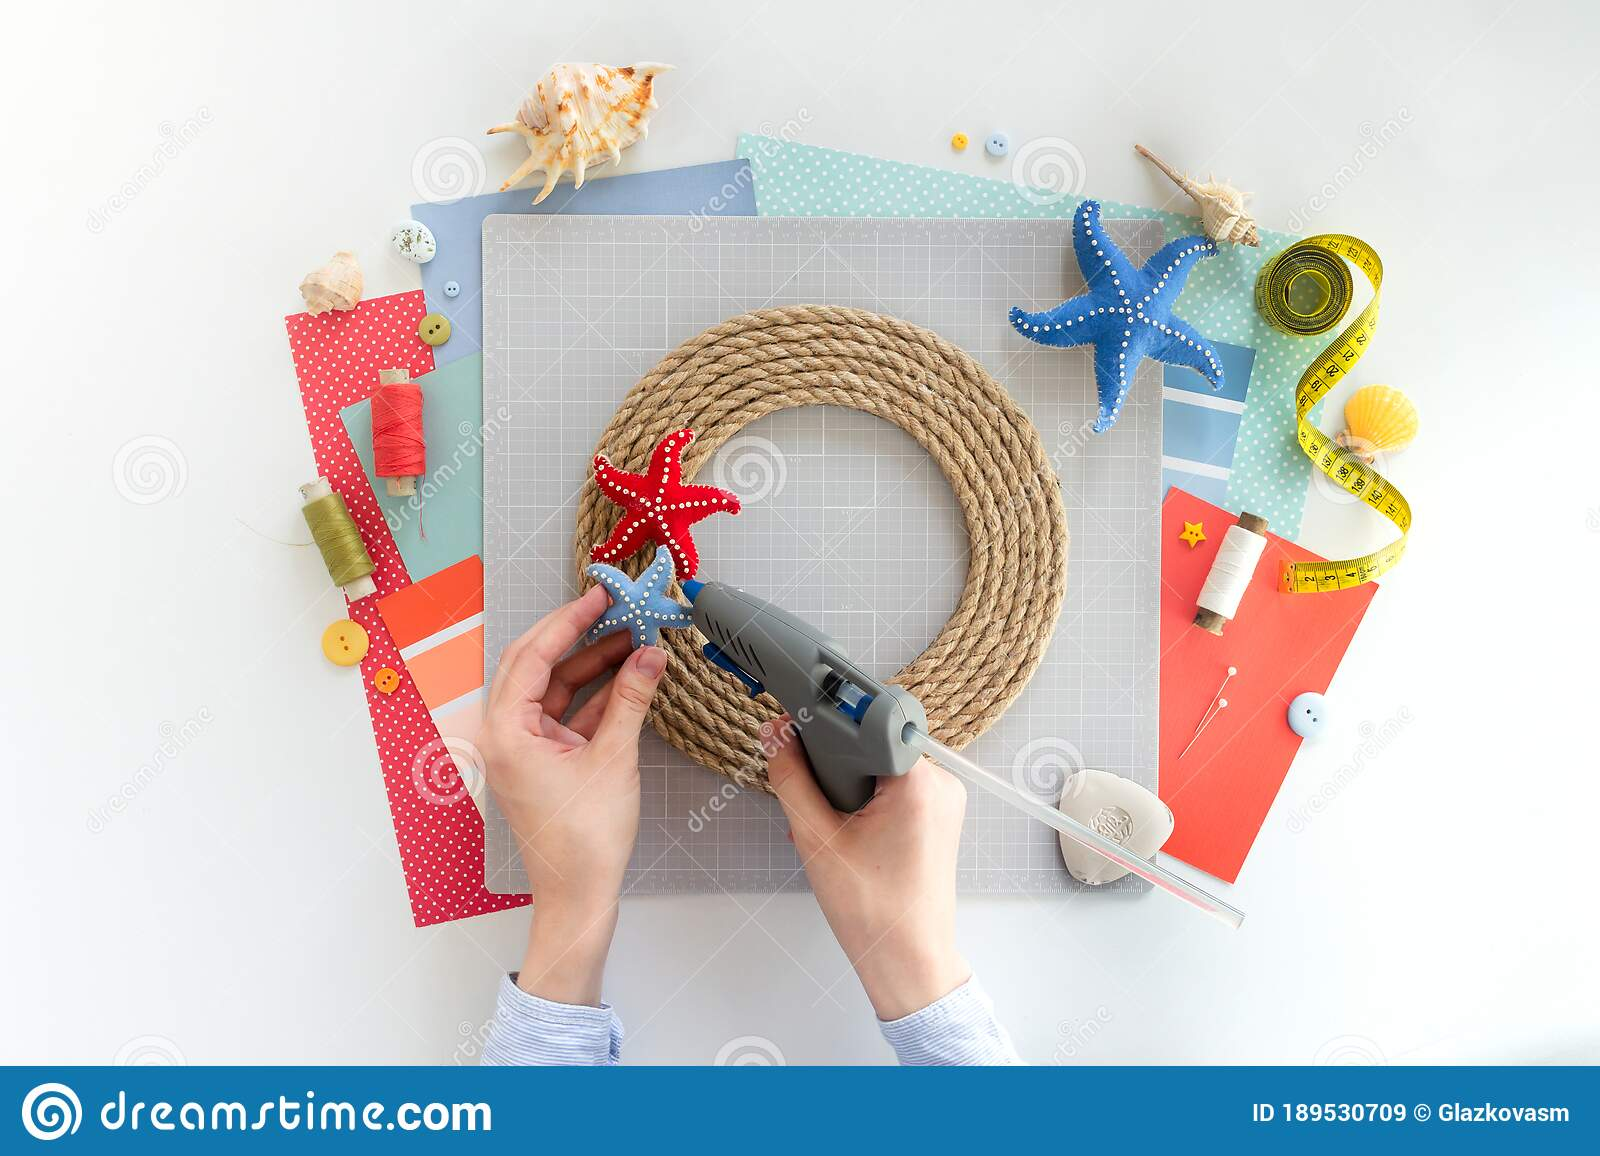 Diy Instruction Step By Step Tutorial Making Summer Decor Wreath Of Rope With Sea Stars Made Of Felt Craft Tools Stock Image Image Of Threads Scrapbooking 189530709